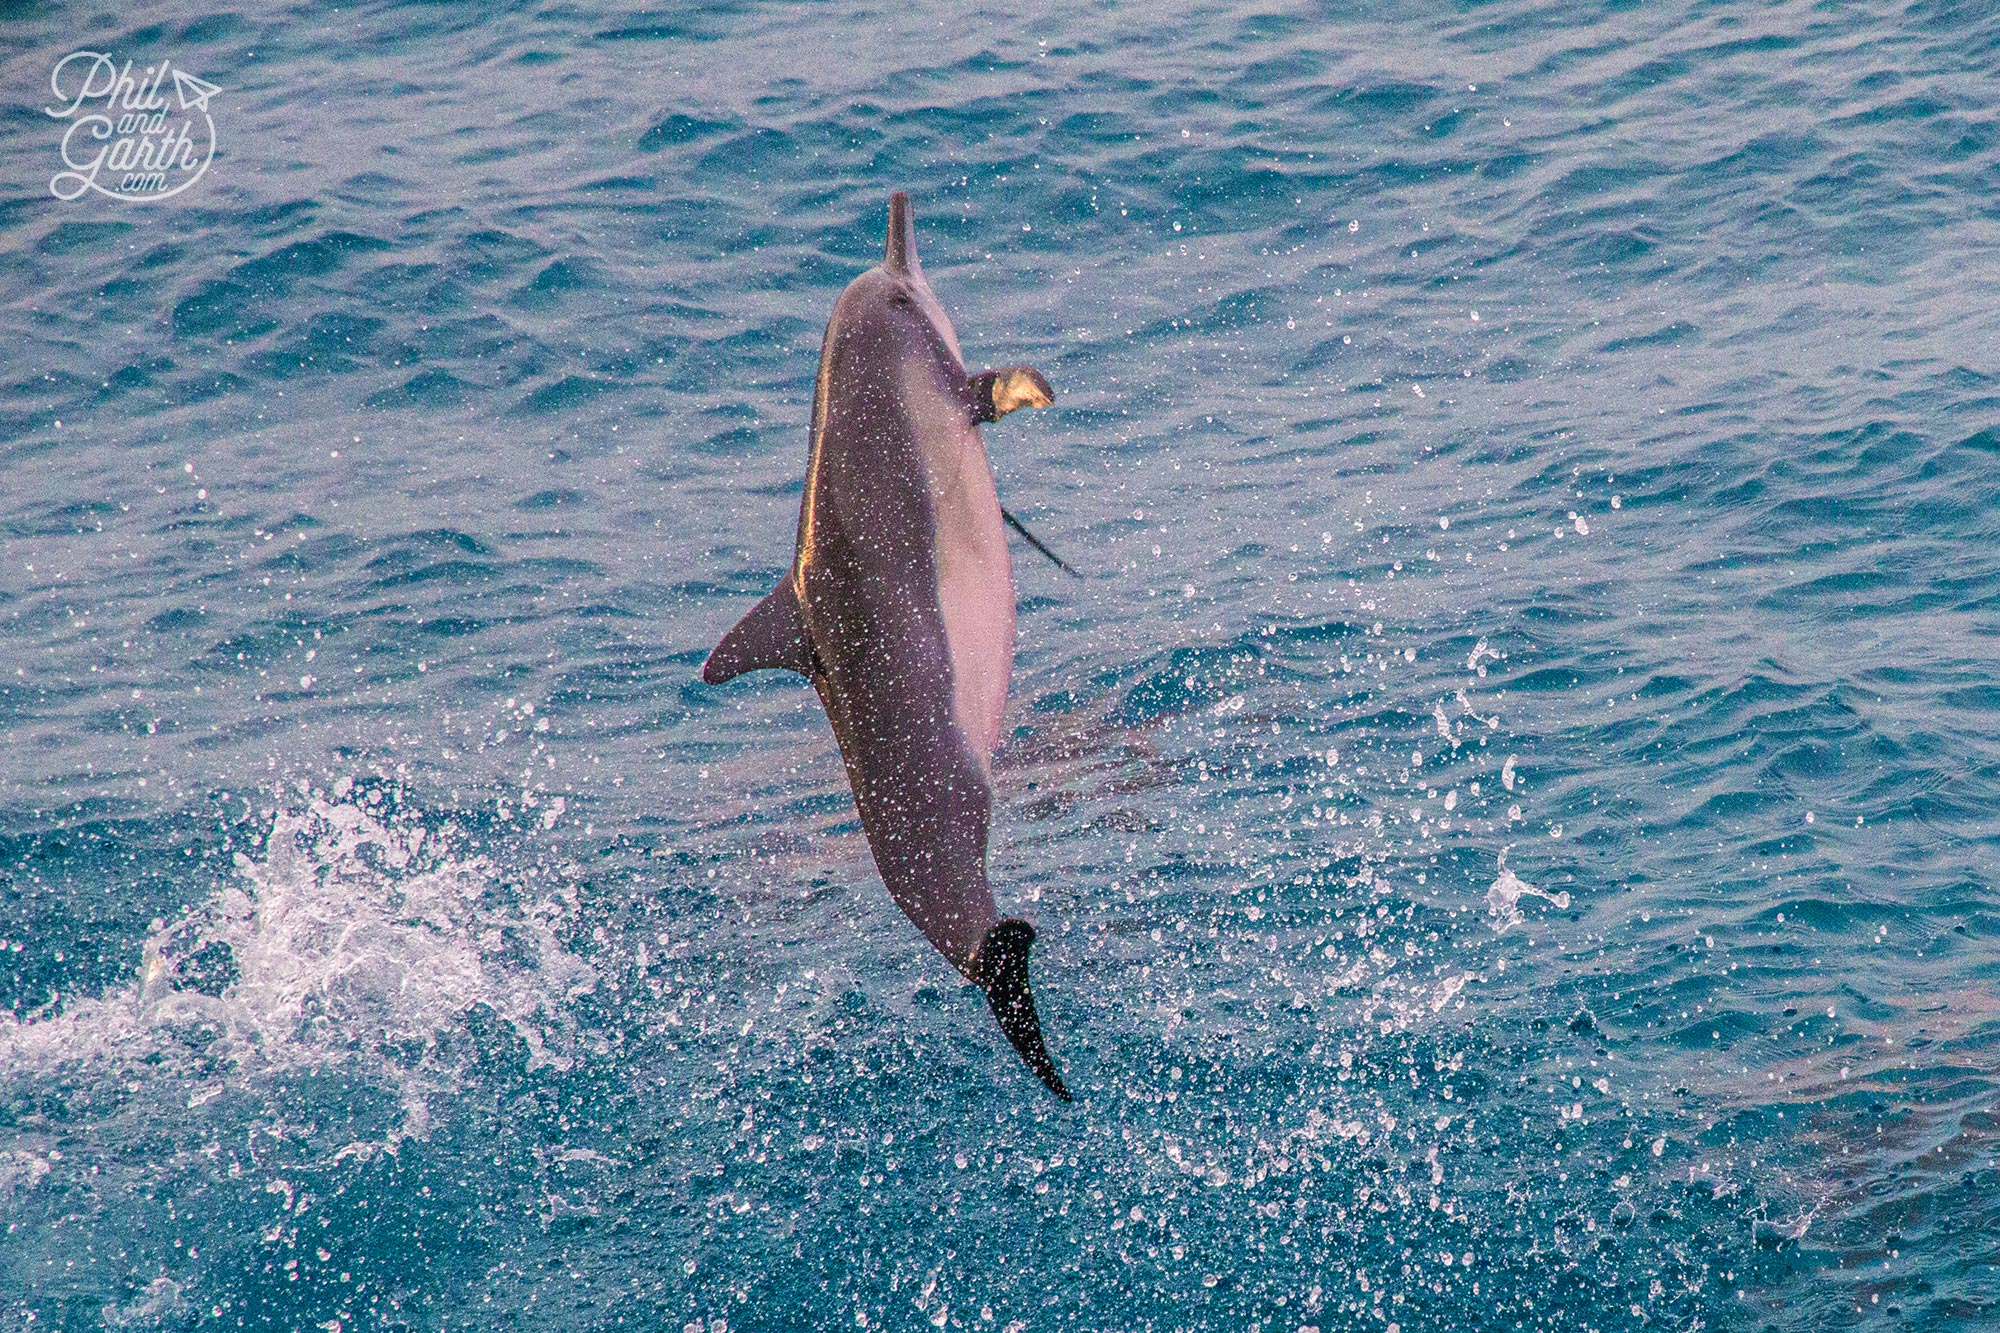 So lucky to witness dolphins leaping out of the water and having fun